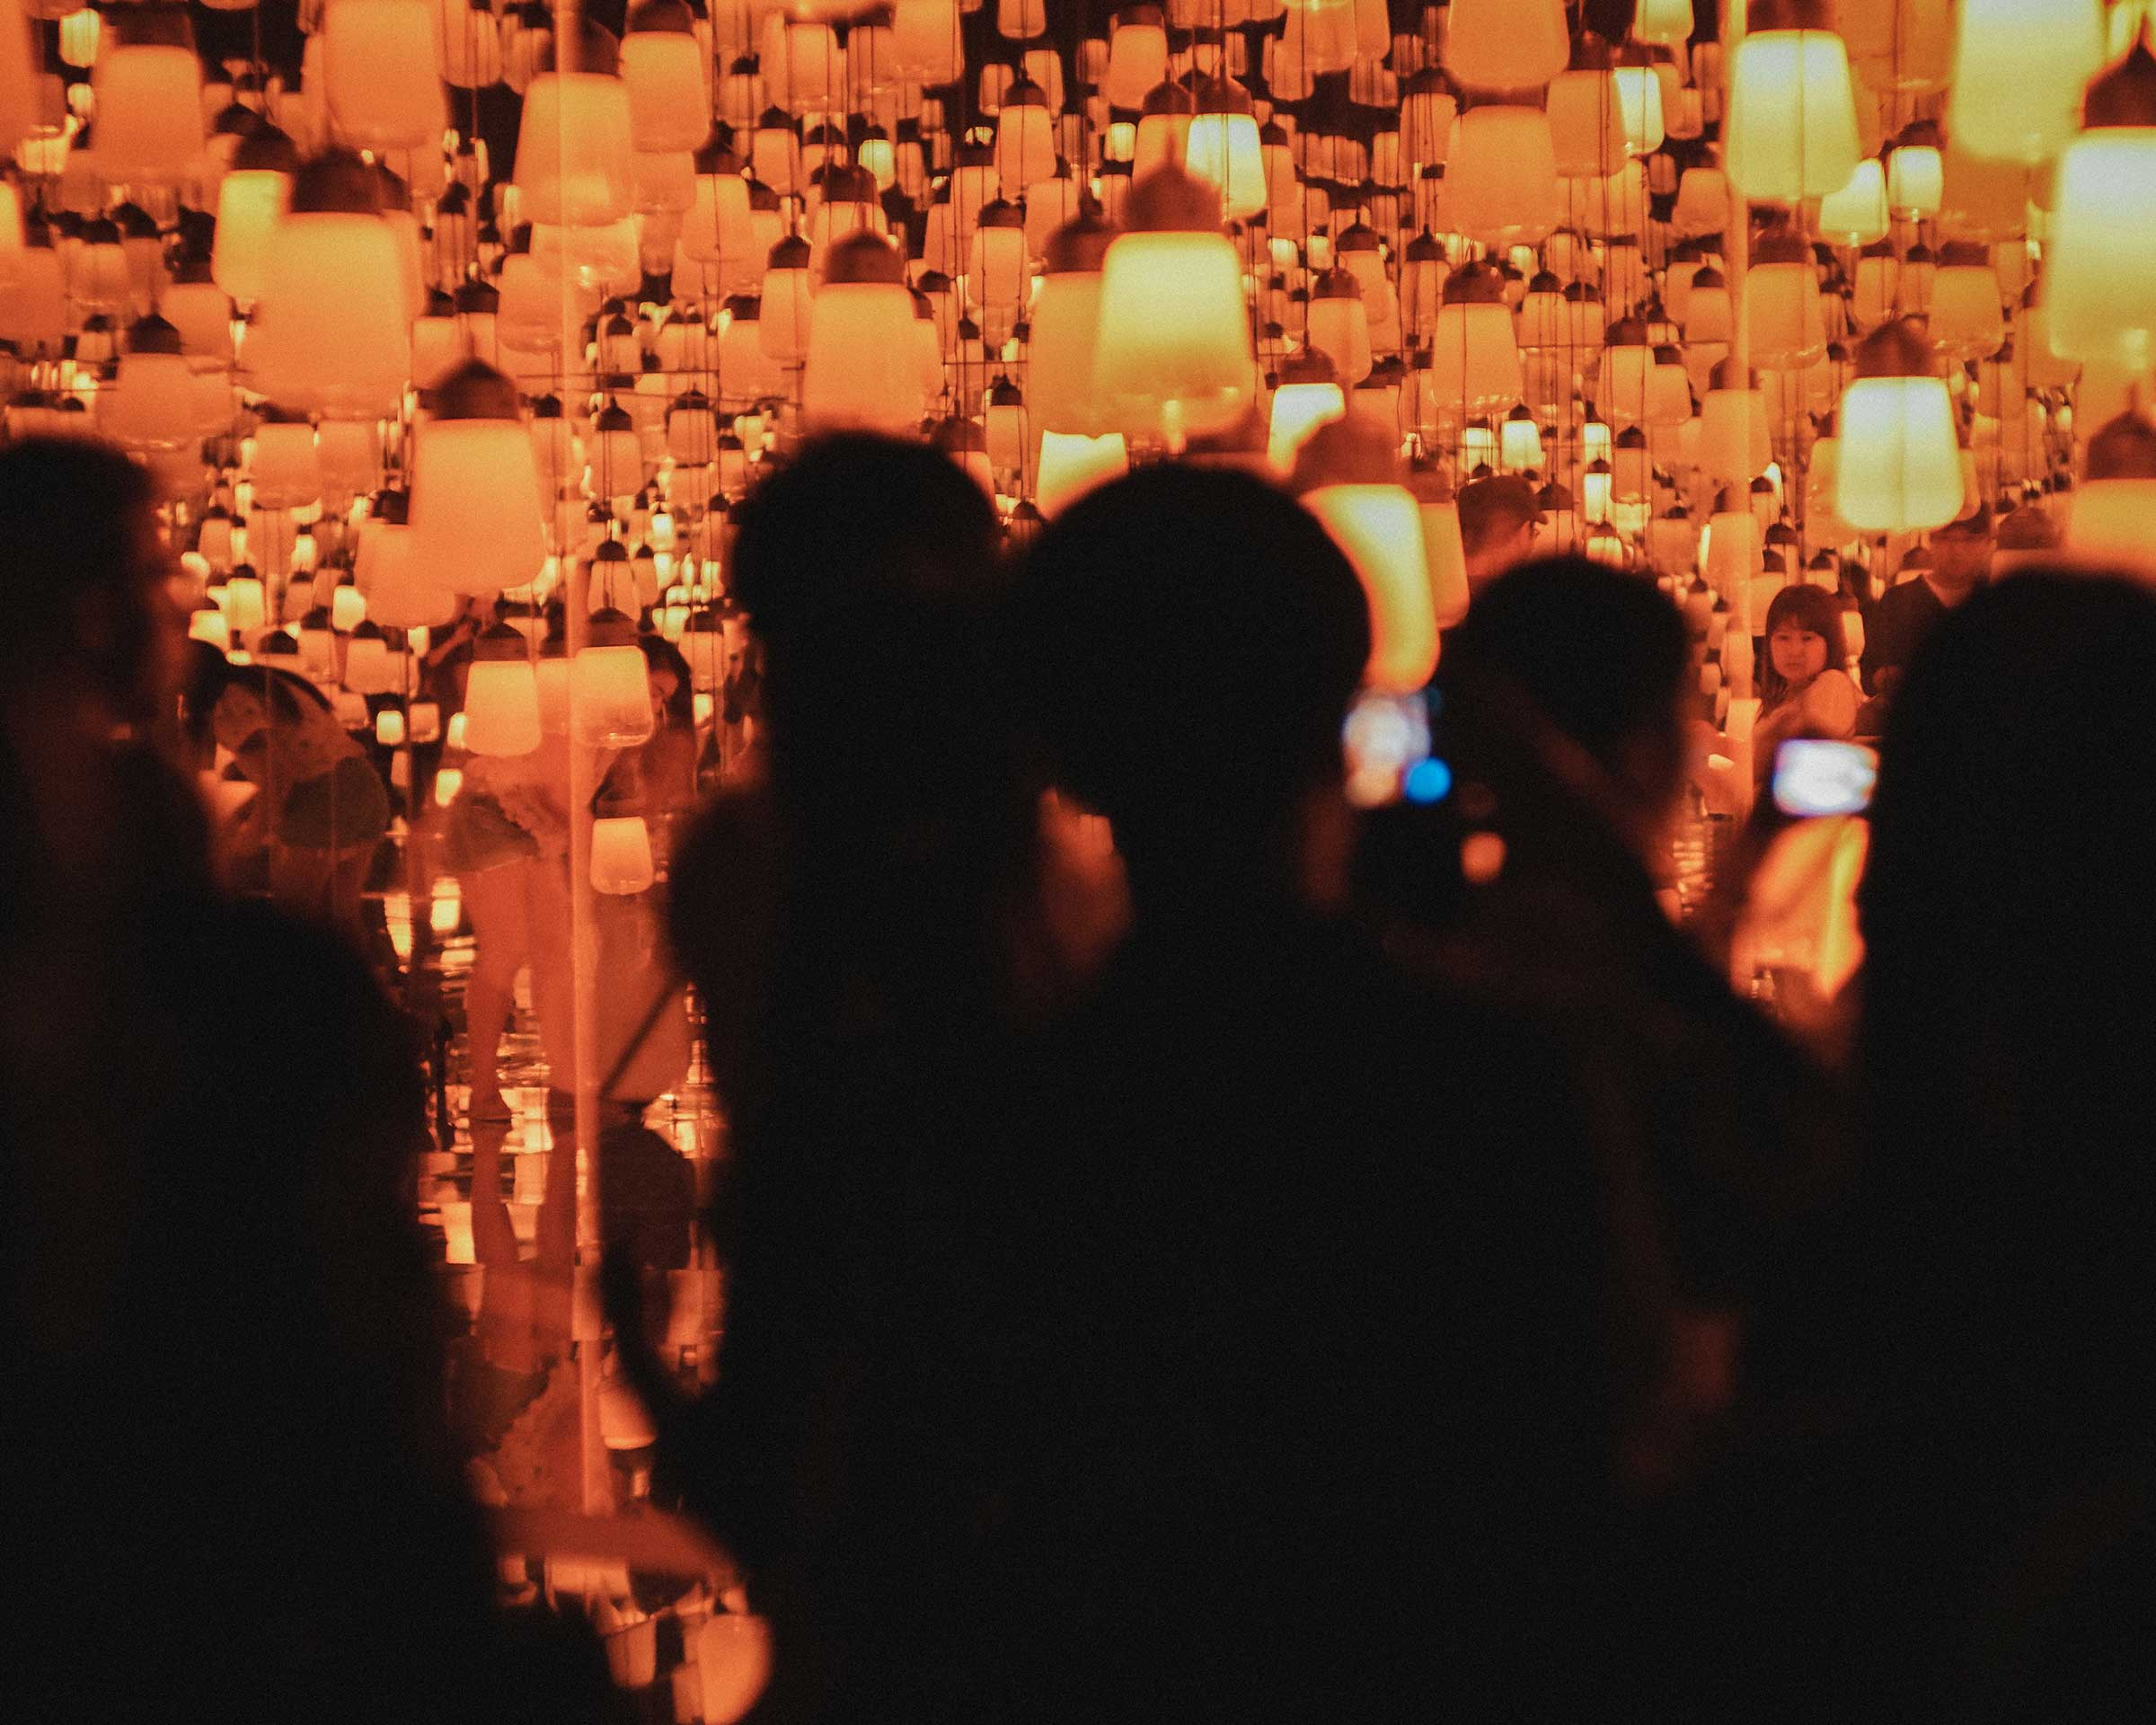 View from outside of Forest of Resonating Lamps at teamLab Borderless, Tokyo